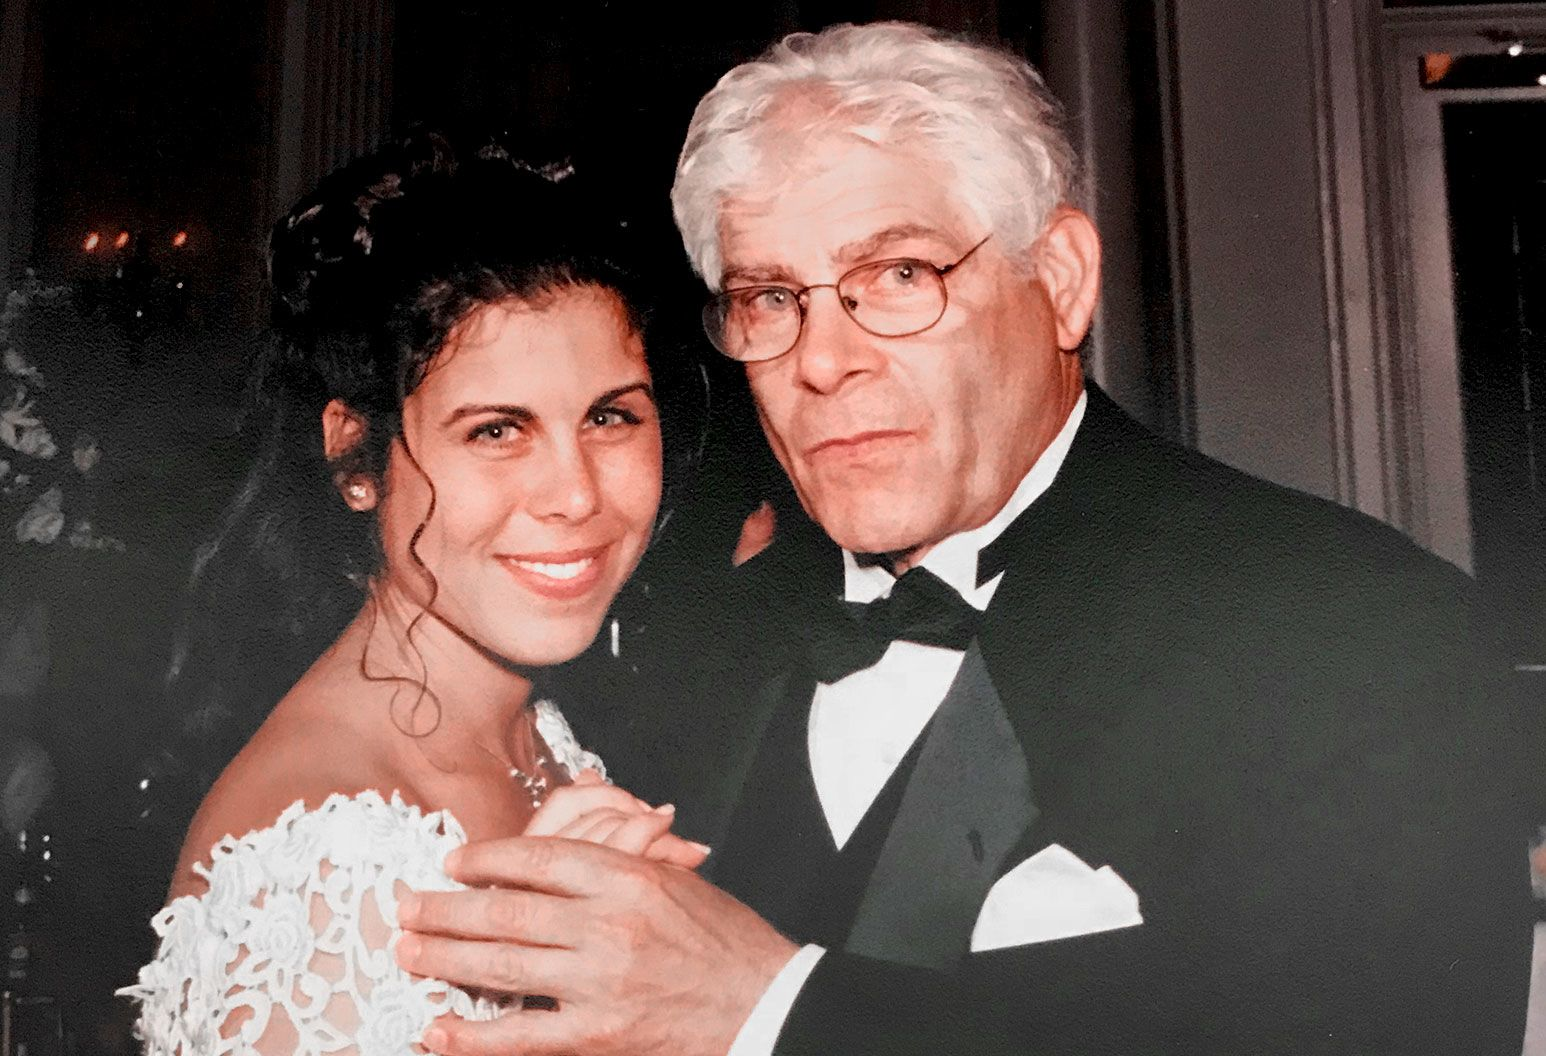 A Woman with black hair in a wedding dress smiles at the camera as she dances with an older man with gray hair and glasses in a tuxedo.